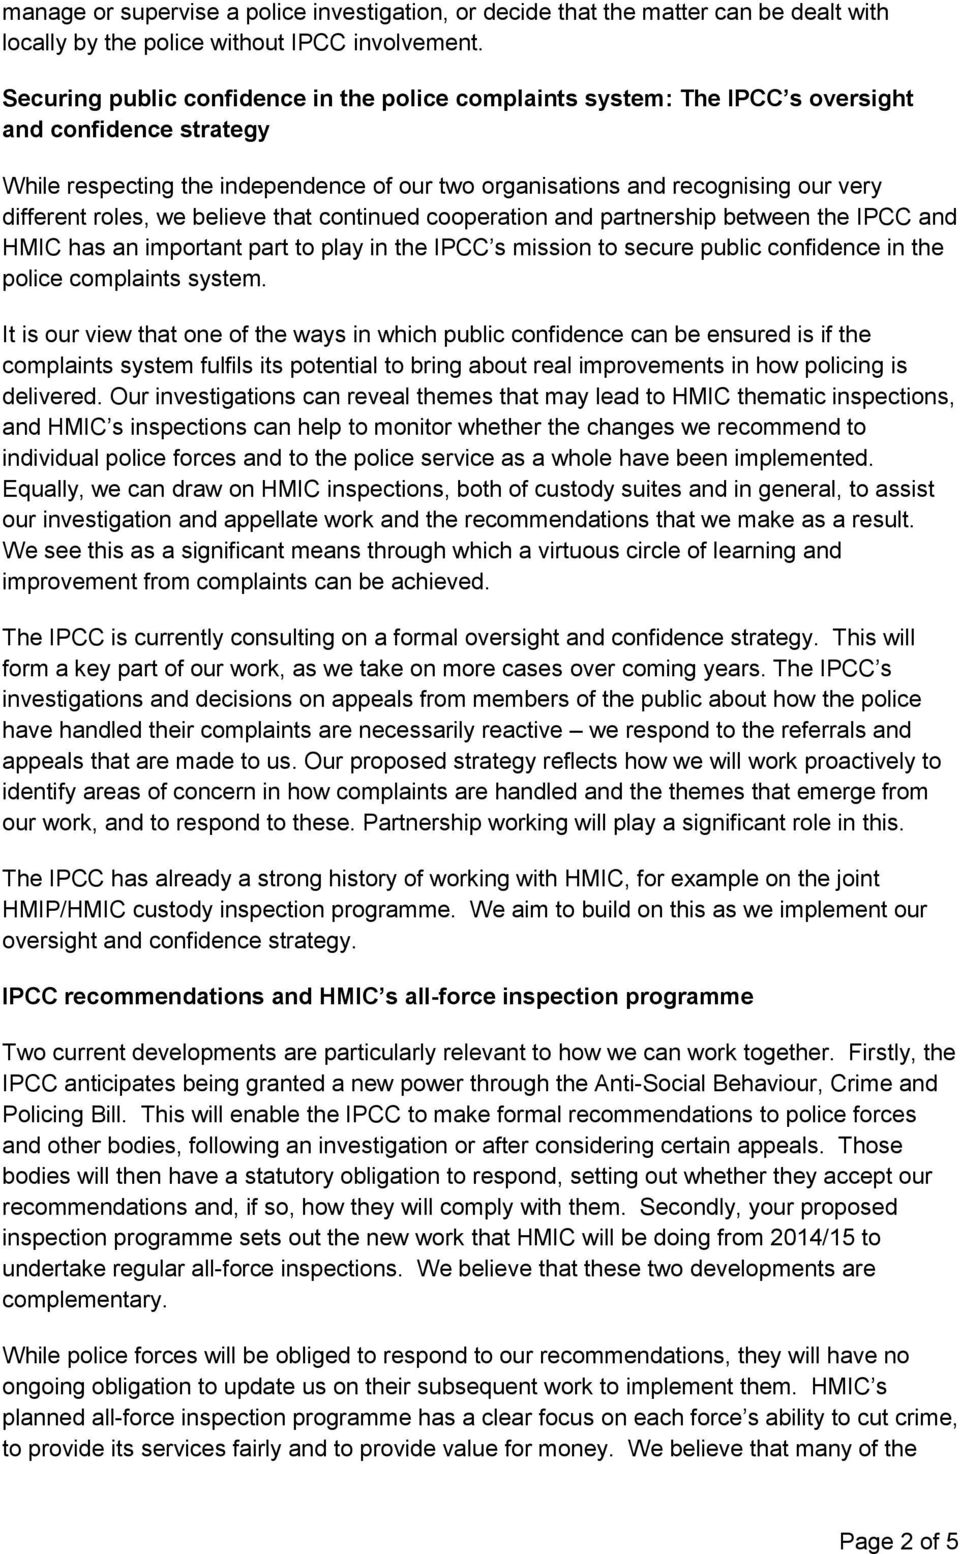 roles, we believe that continued cooperation and partnership between the IPCC and HMIC has an important part to play in the IPCC s mission to secure public confidence in the police complaints system.